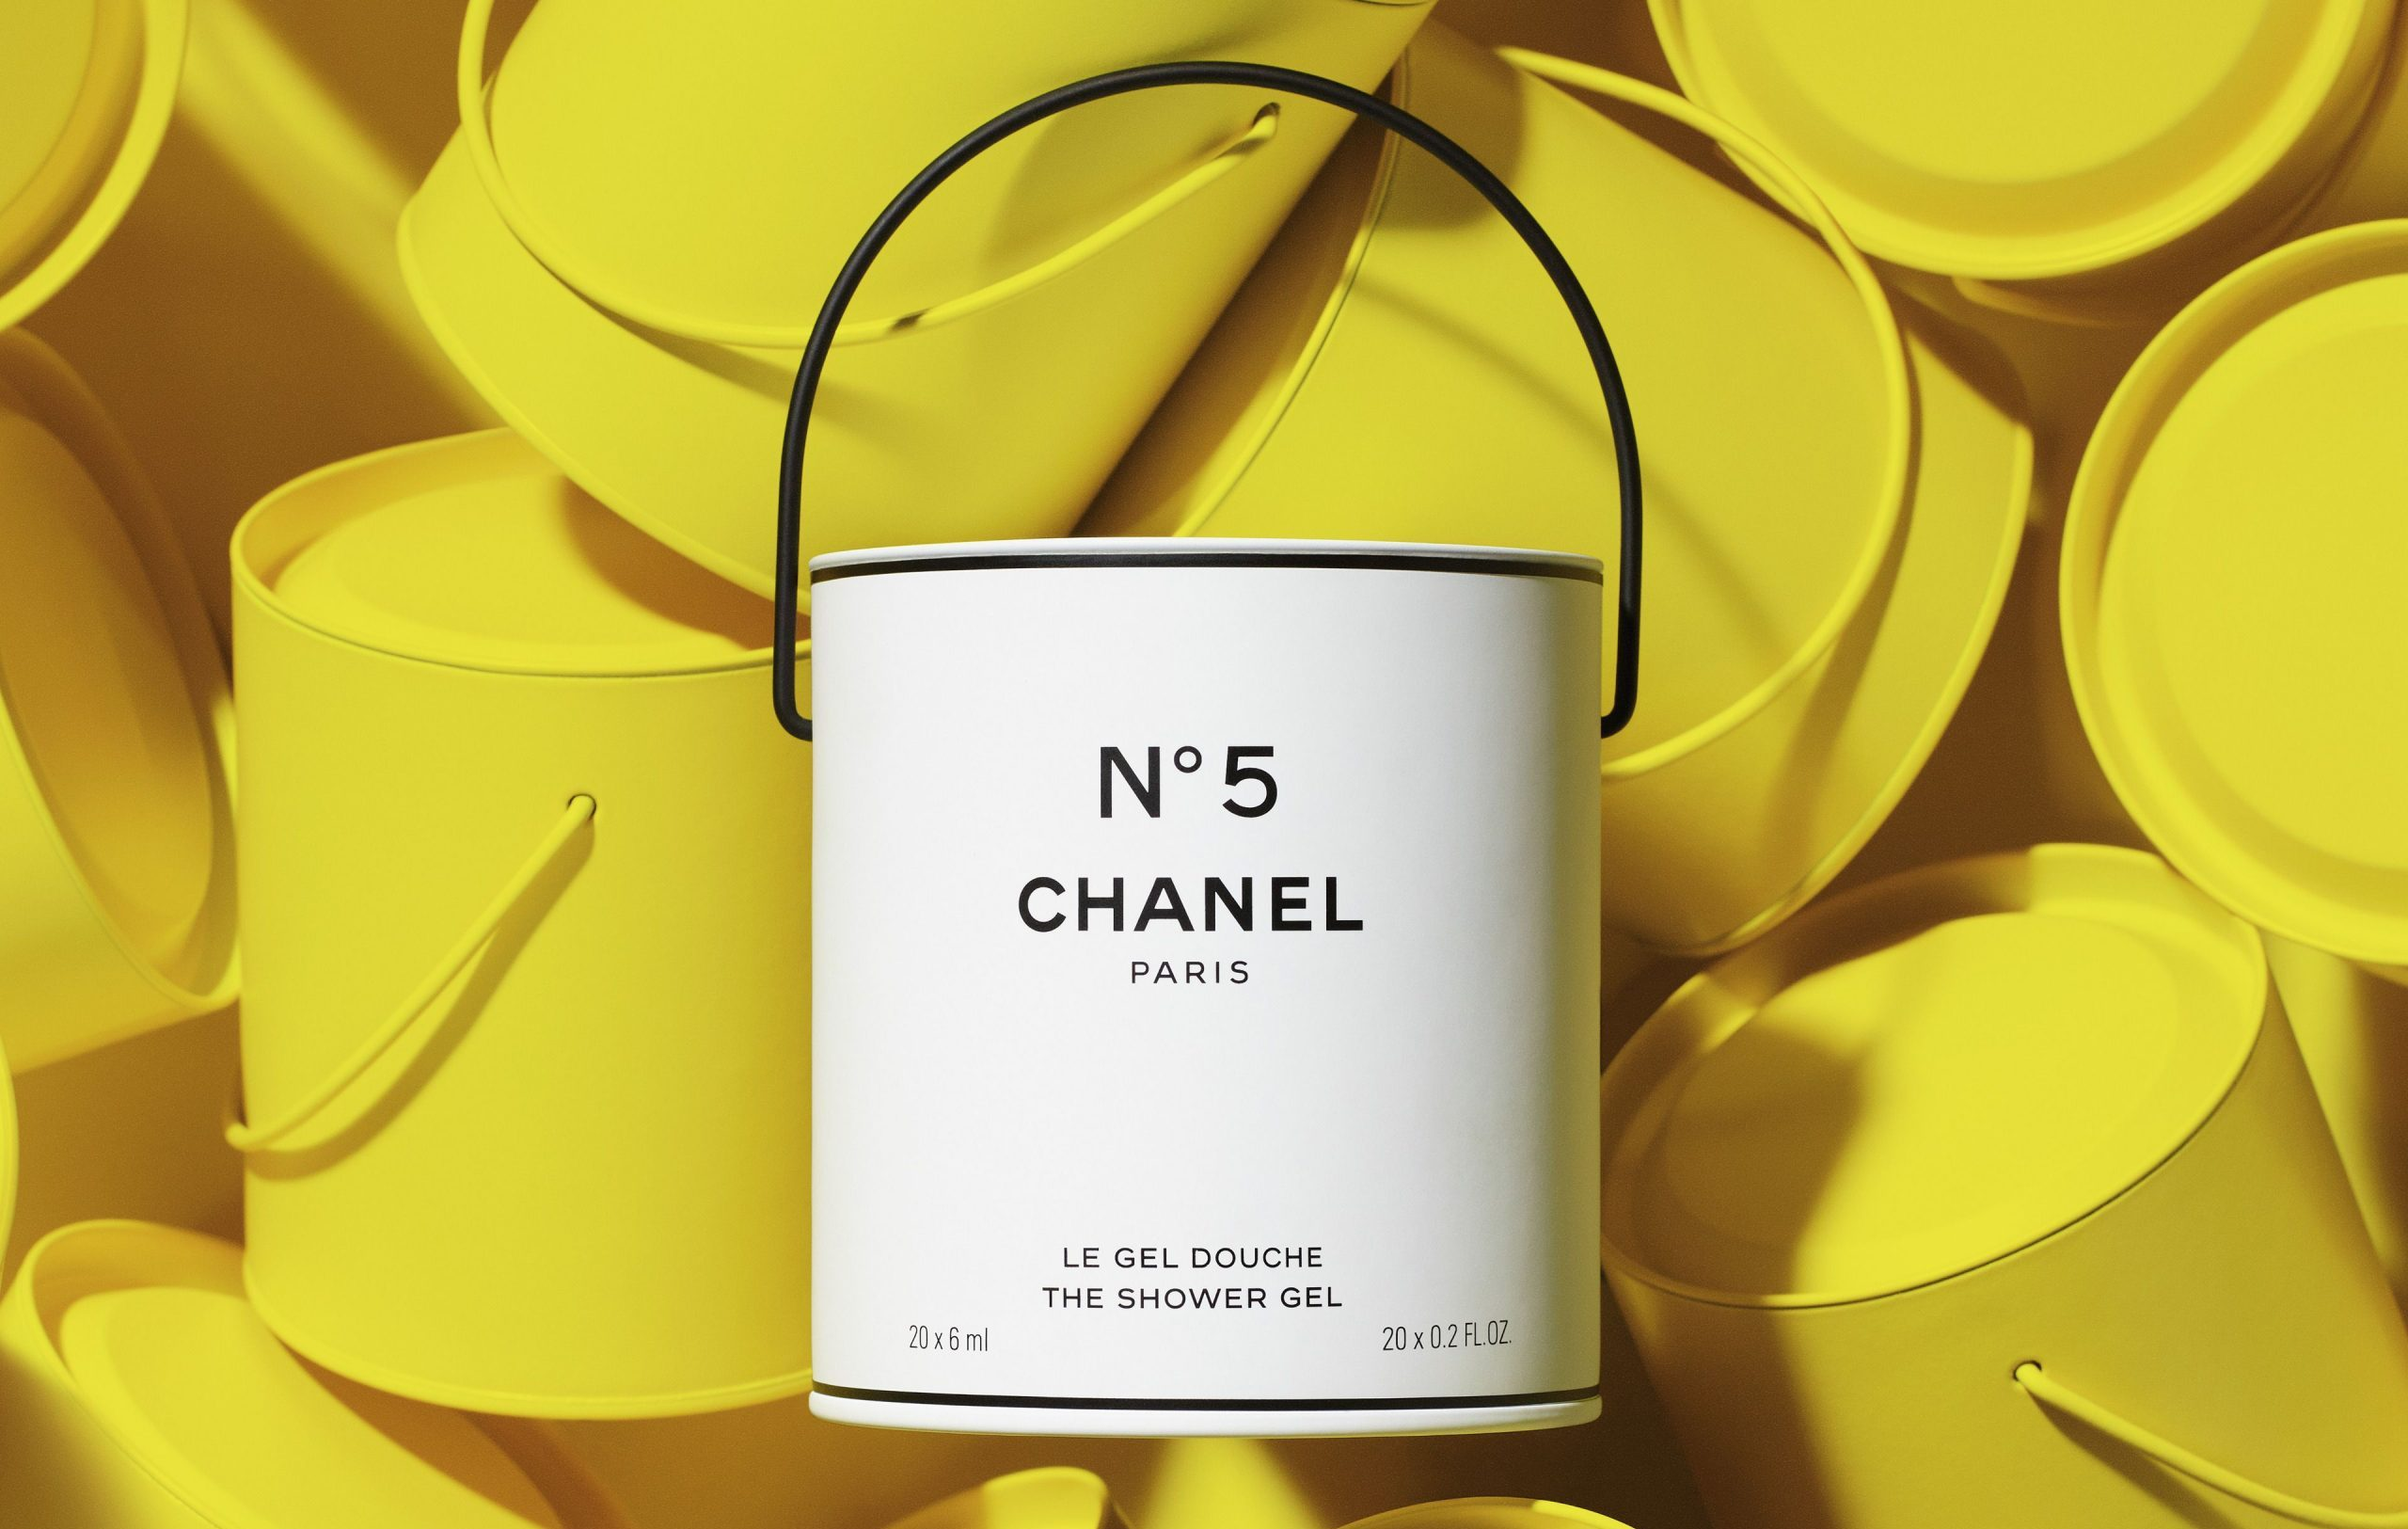 Chanel's Factory 5